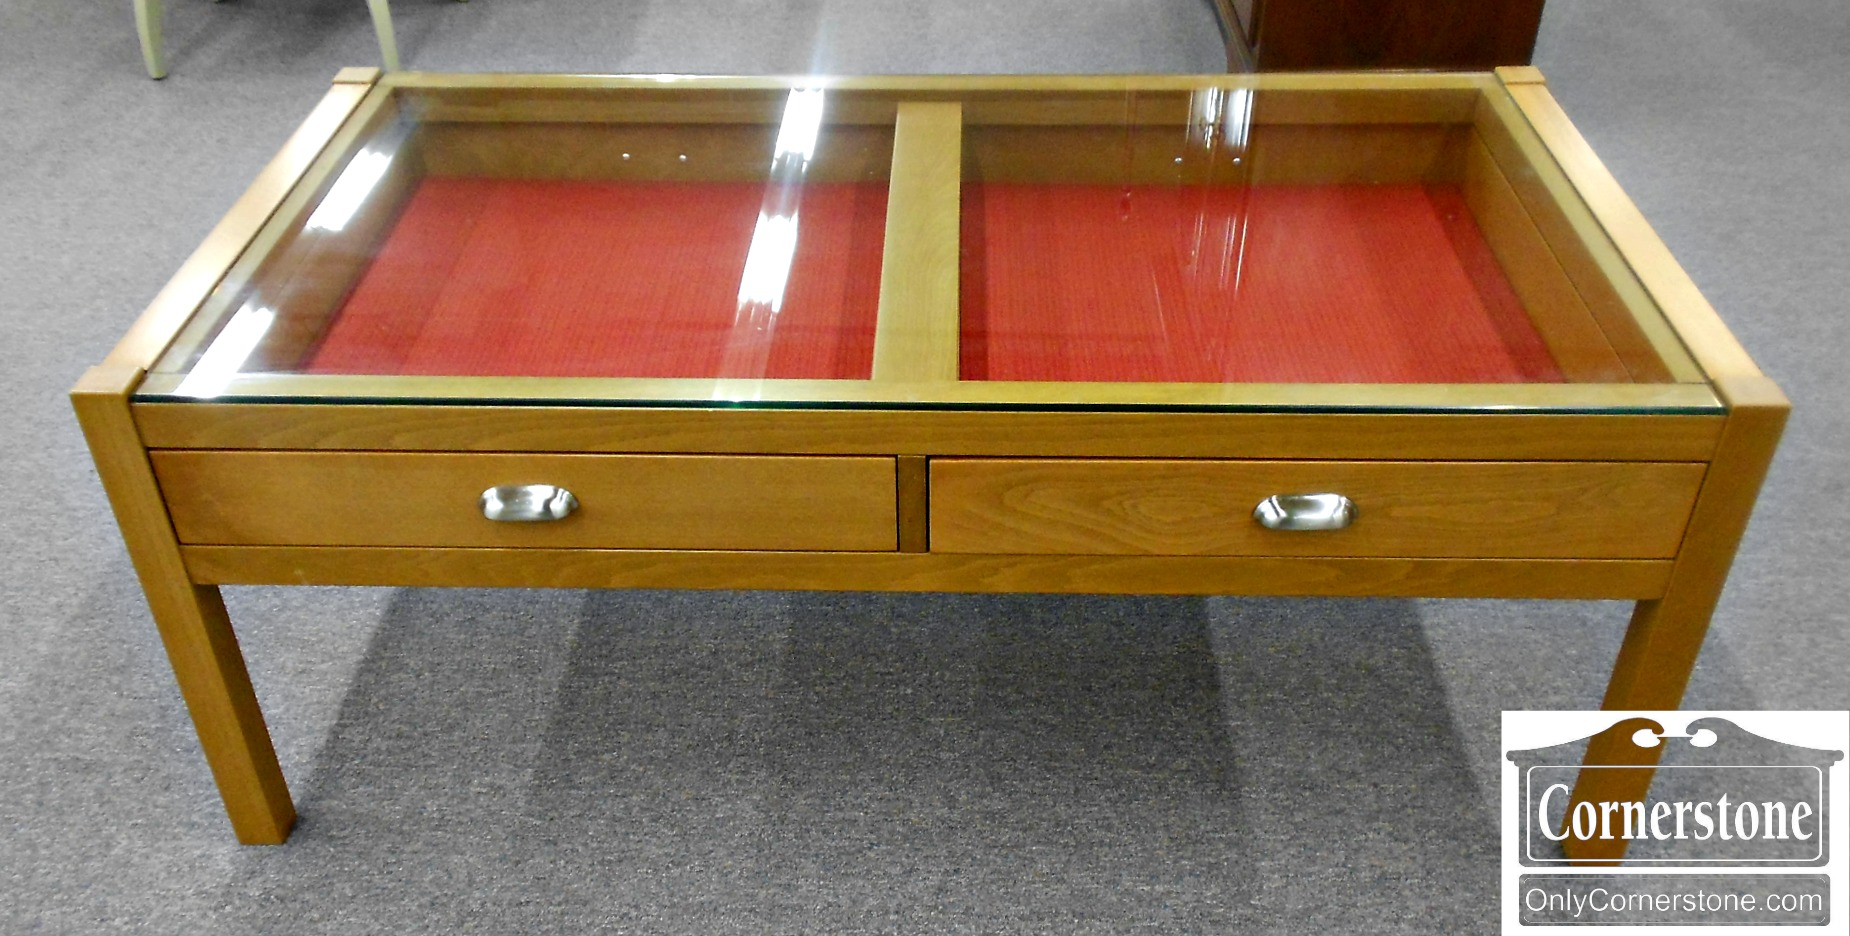 5666-453 Casual Glass Top Display Coffee Table